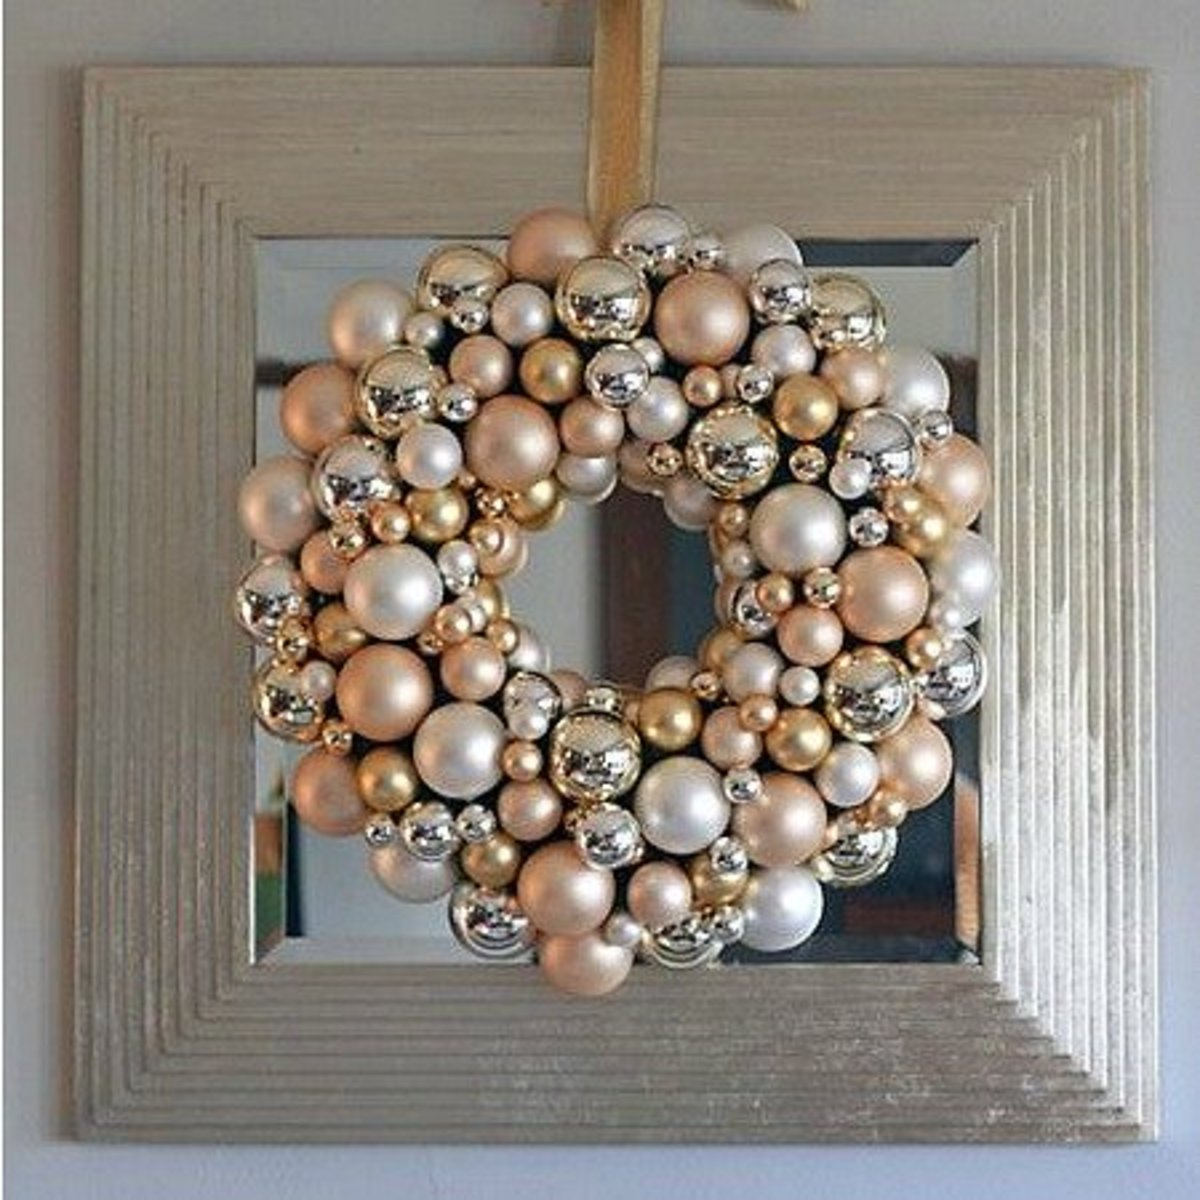 Image #3 - Champagne and White Christmas Ornament Wreath